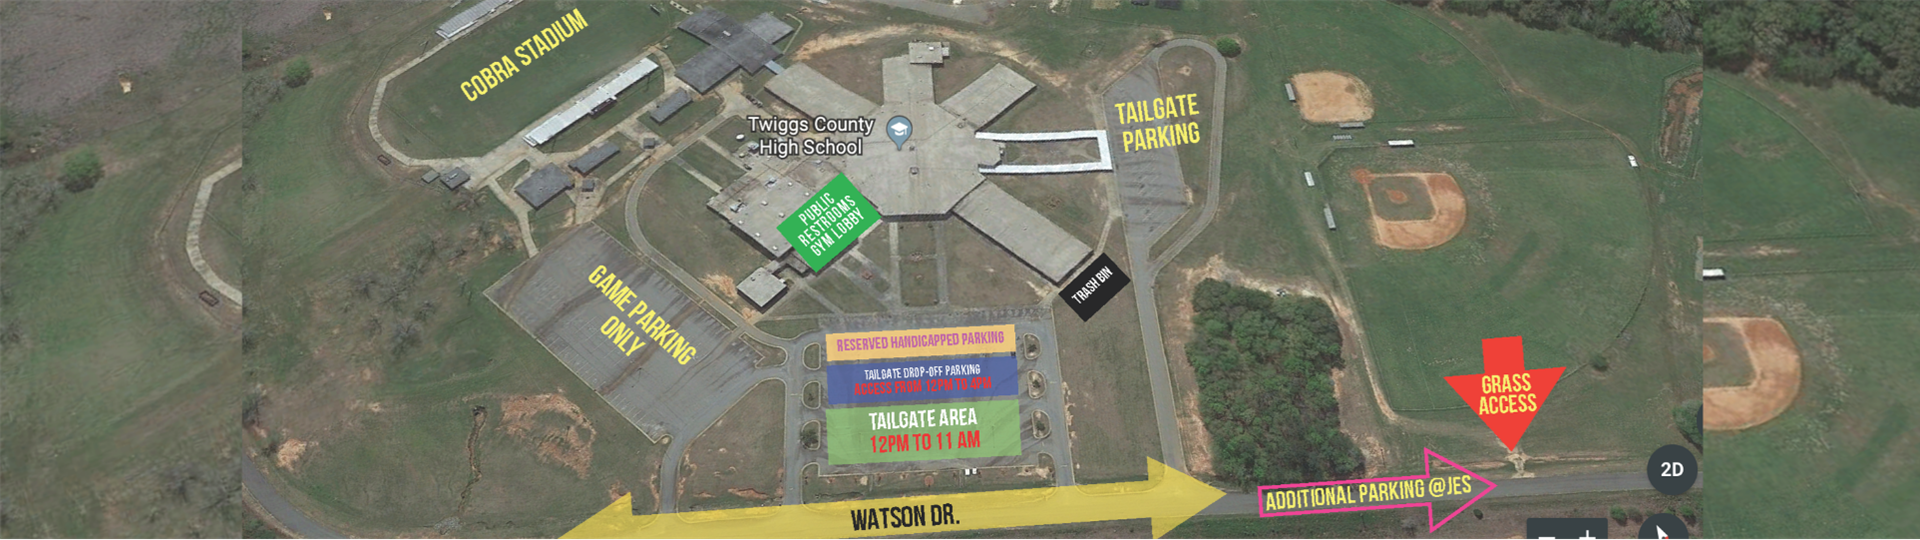 Homecoming 2019 Tailgate Map